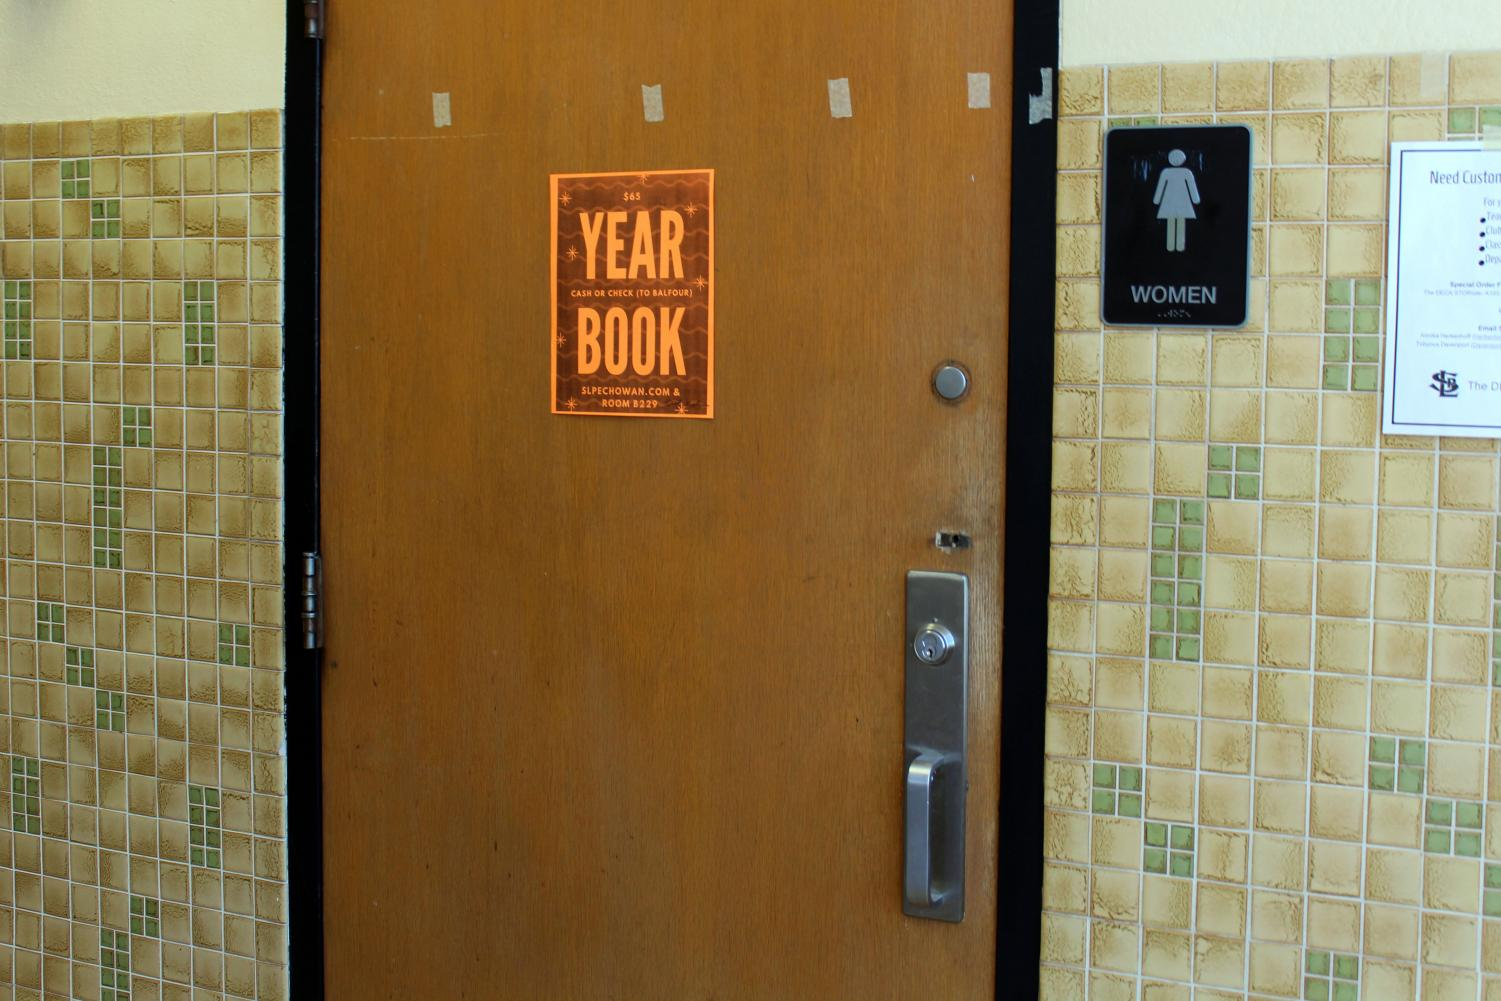 The A3 girls' bathroom is one of the bathrooms available for student use in the building. The 2019-2020 school year updated bathroom practice restricts students from using the bathroom to only during passing time.